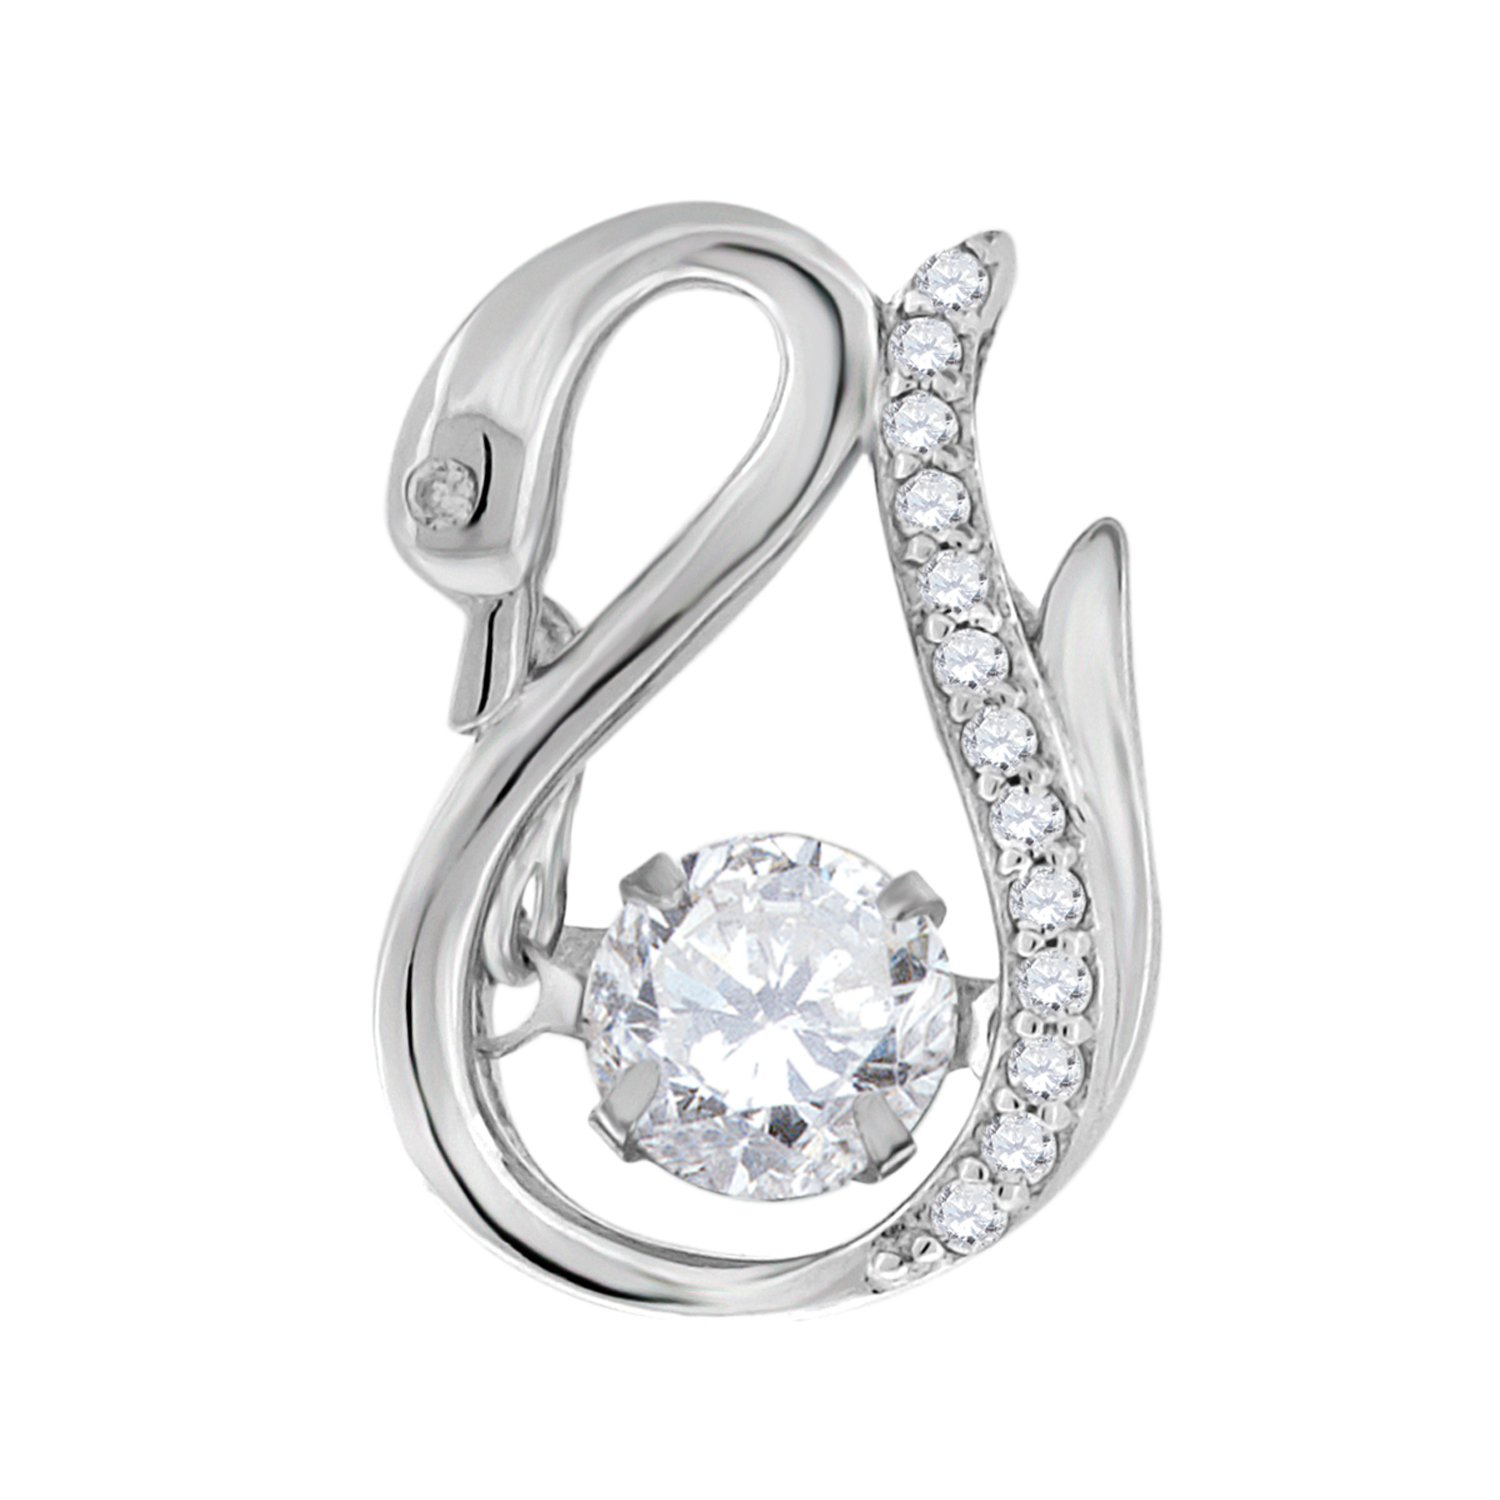 Jewels By Lux Sterling Silver Womens Moving Sparkling Round Cubic Zirconia CZ Swan Animal Fashion Charm Pendant Set With The Highest Quality Cubic Zirconia.